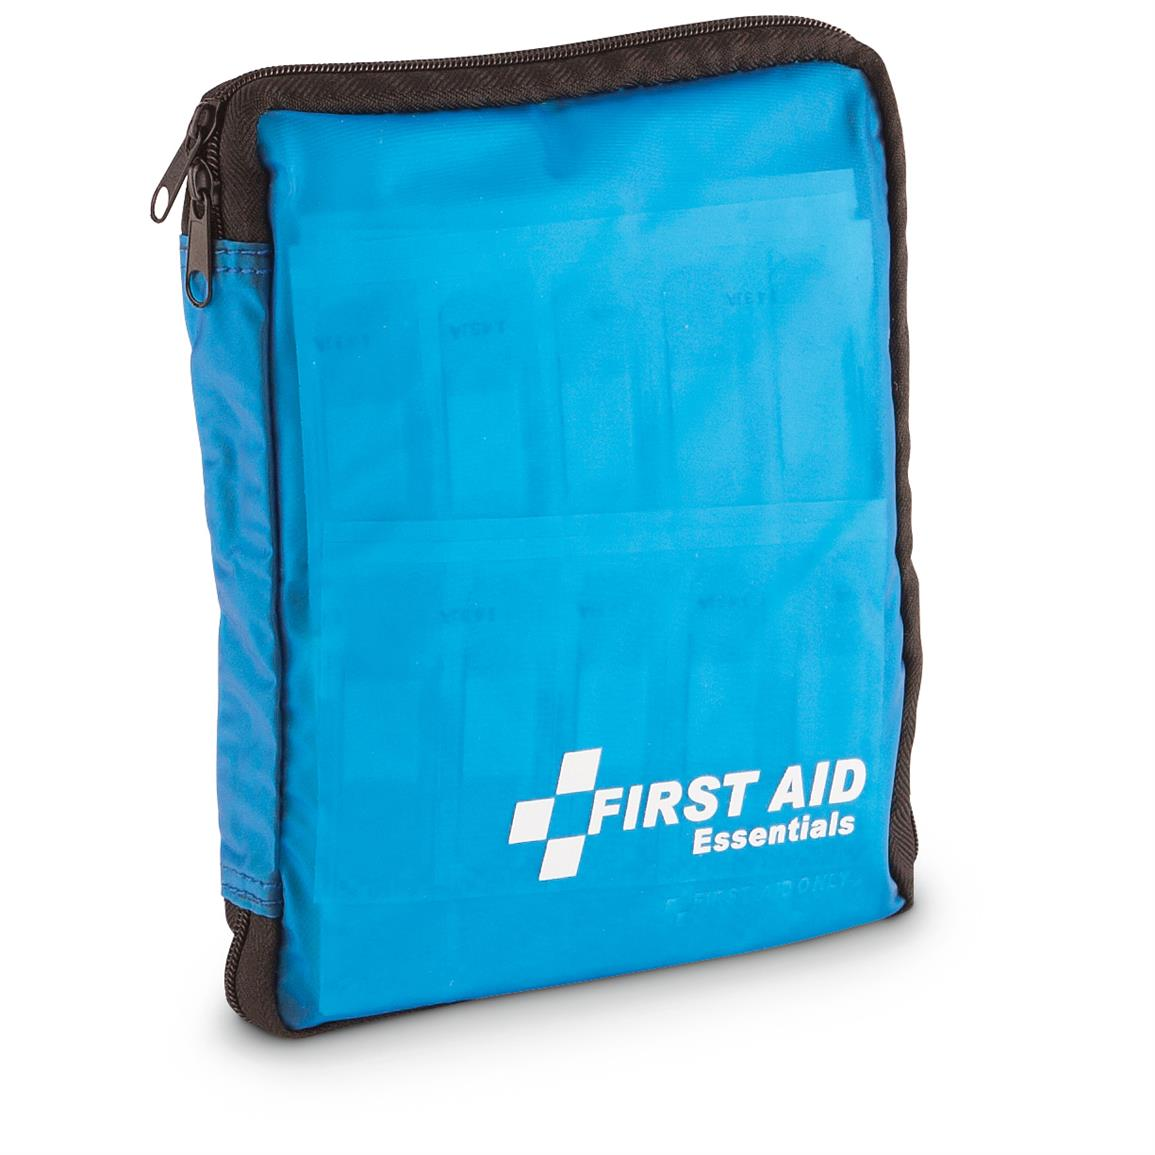 247 Piece First Aid Kit, Soft Case